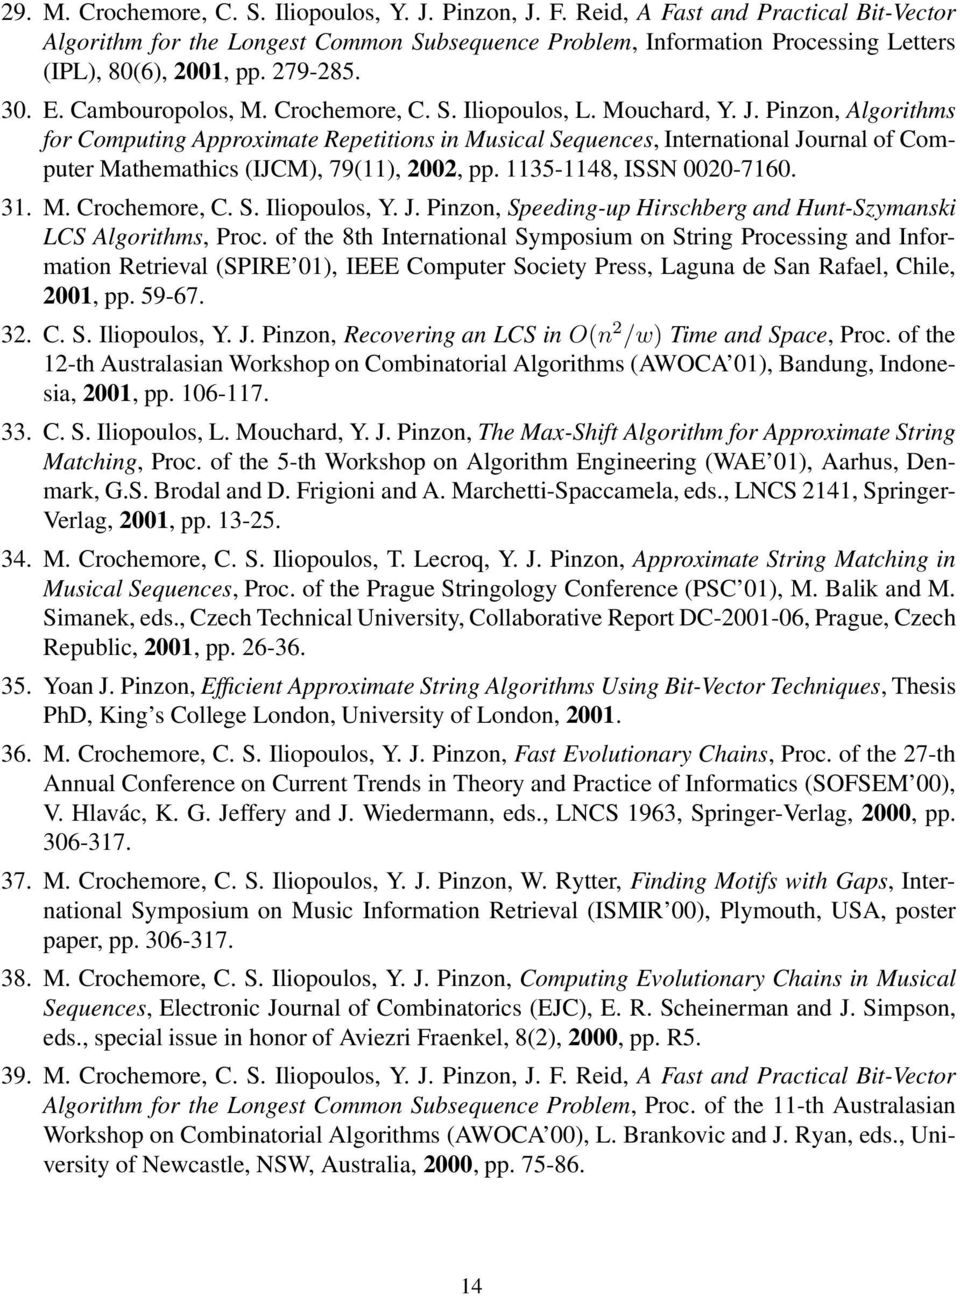 Mouchard, Y. J. Pinzon, Algorithms for Computing Approximate Repetitions in Musical Sequences, International Journal of Computer Mathemathics (IJCM), 79(11), 2002, pp. 1135-1148, ISSN 0020-7160. 31.